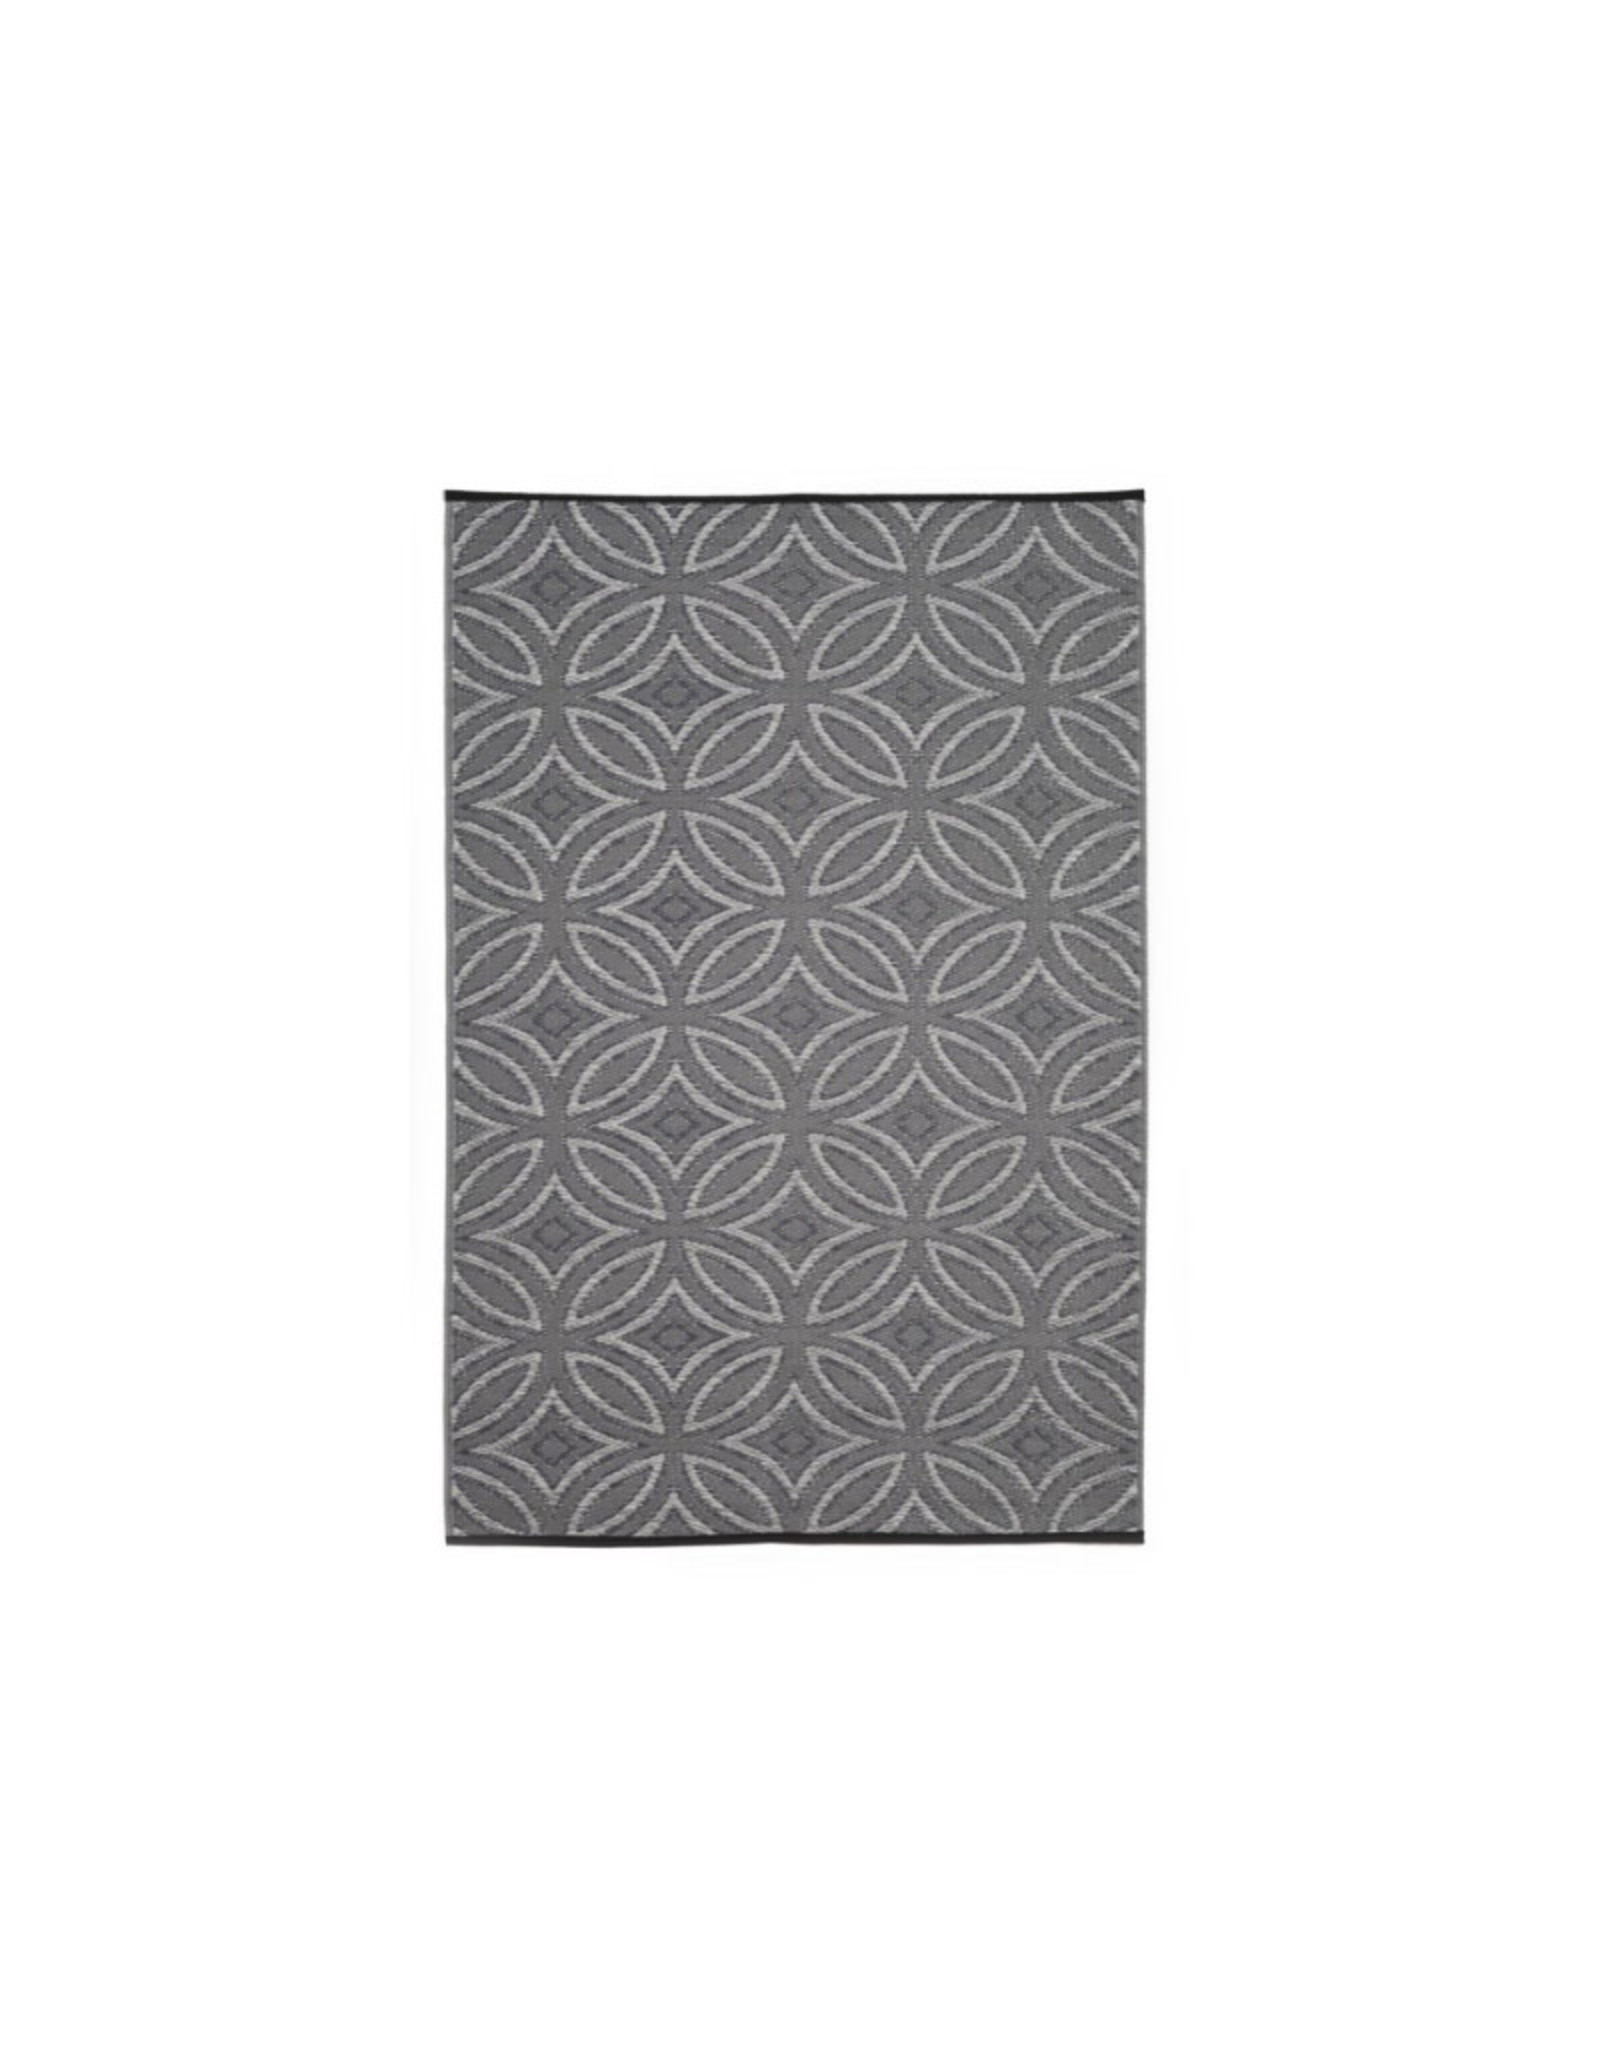 Proloisirs Proloisirs TAPIS buitenkleed 240x150cm GRIS FH04